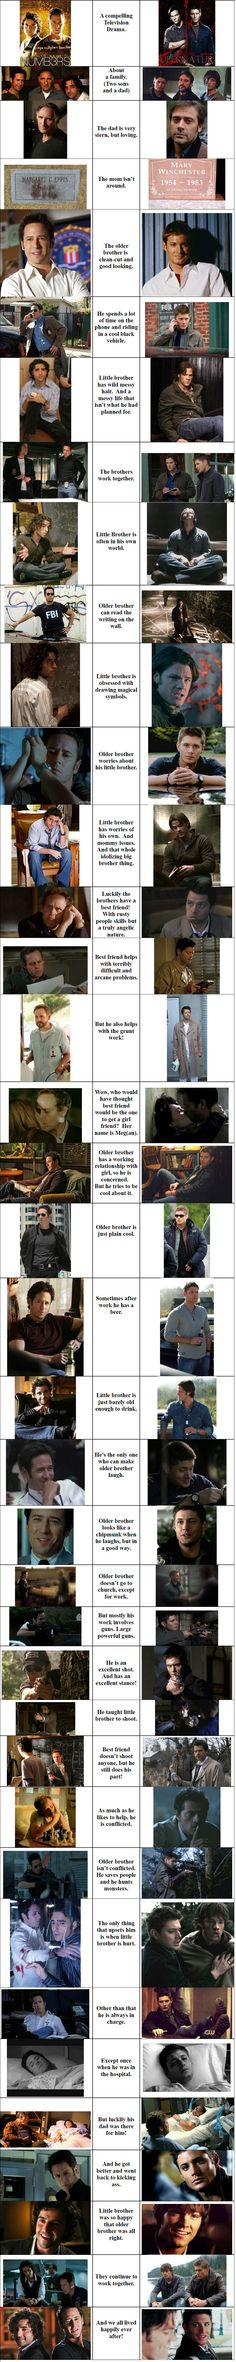 Numb3rs vs. Supernatural...Love this! Two of my favorite shows. But Larry >>>> Castiel for the best friend role